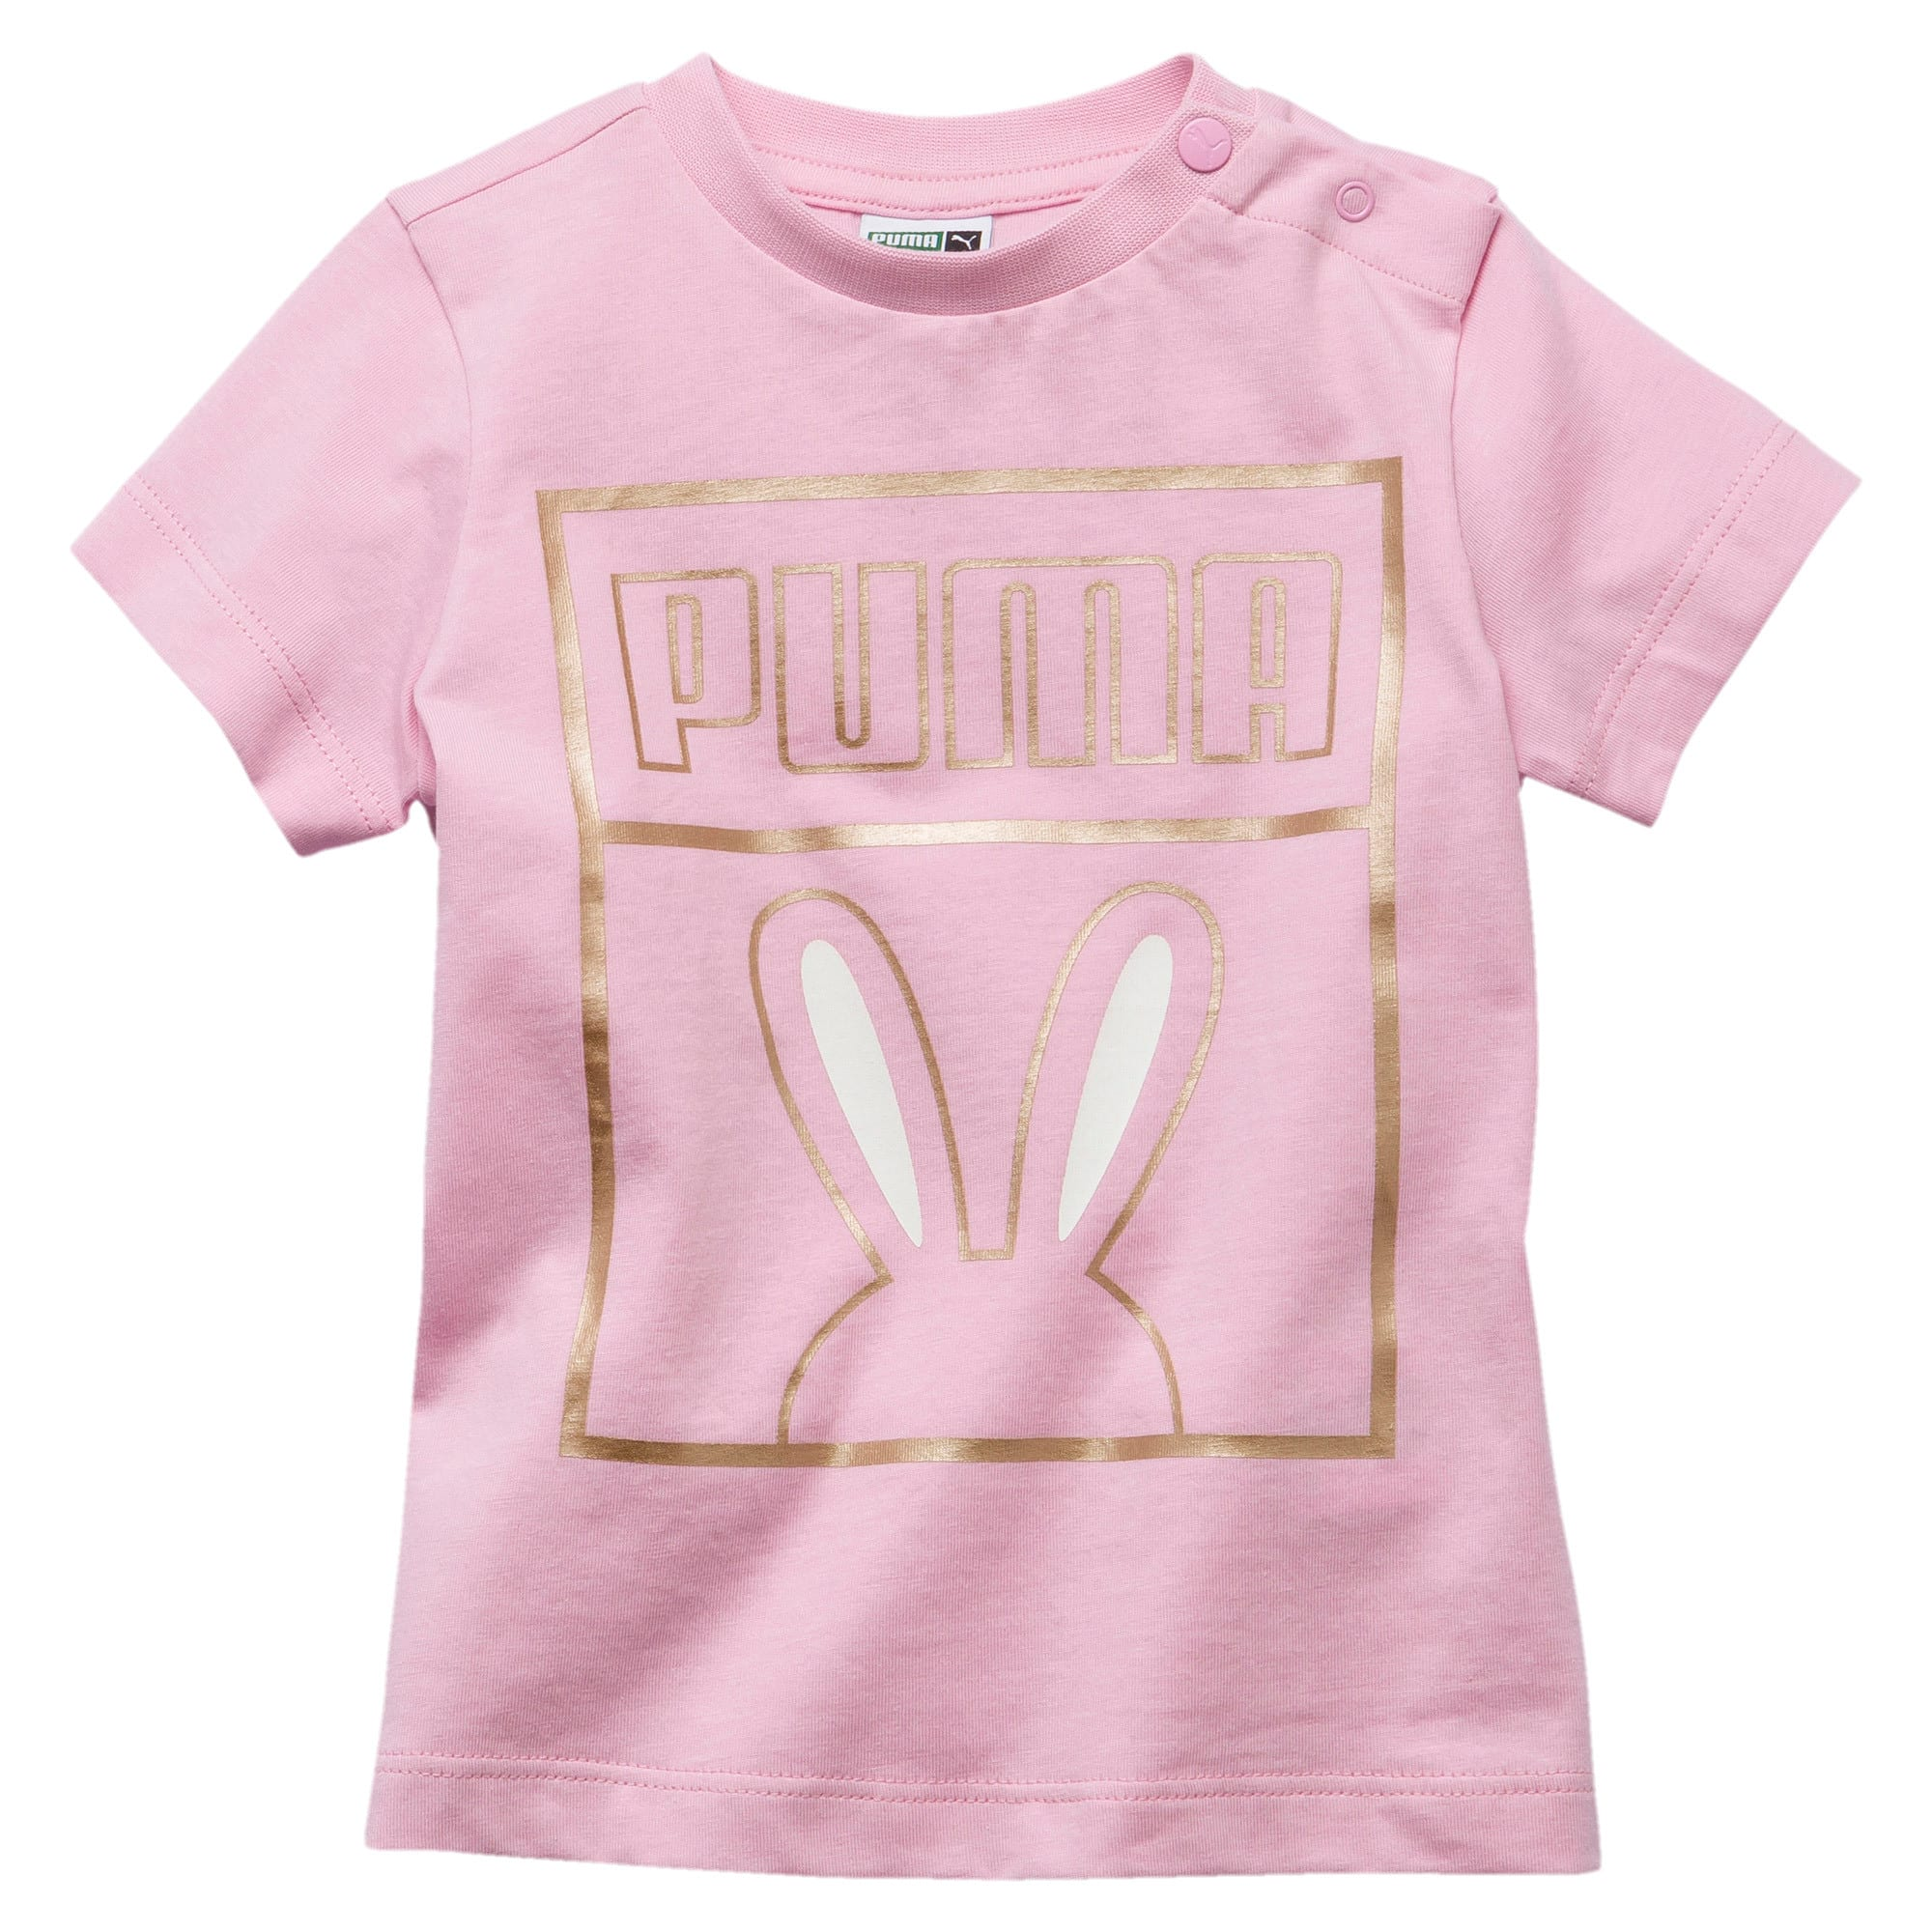 Thumbnail 1 of Easter Babies' Tee, Pale Pink, medium